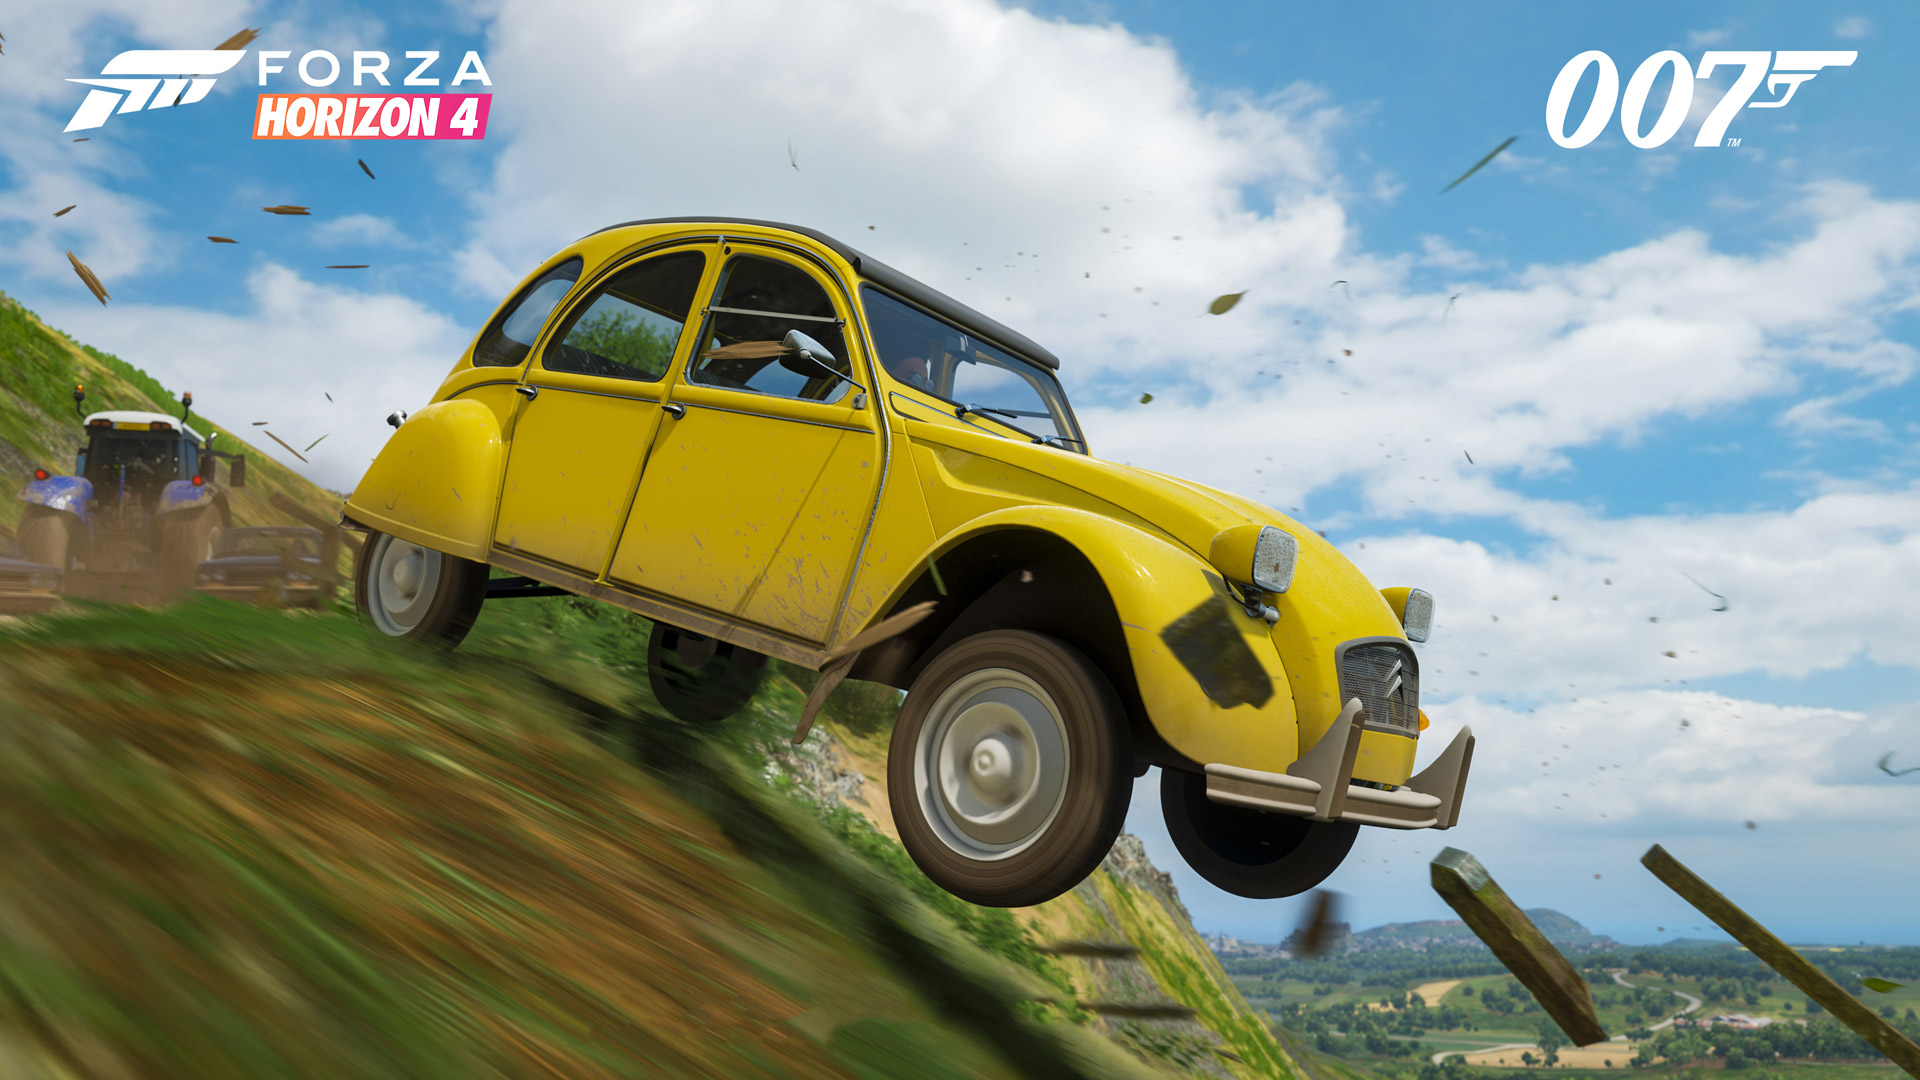 Forza Horizon 4 Wallpaper in 1920x1080